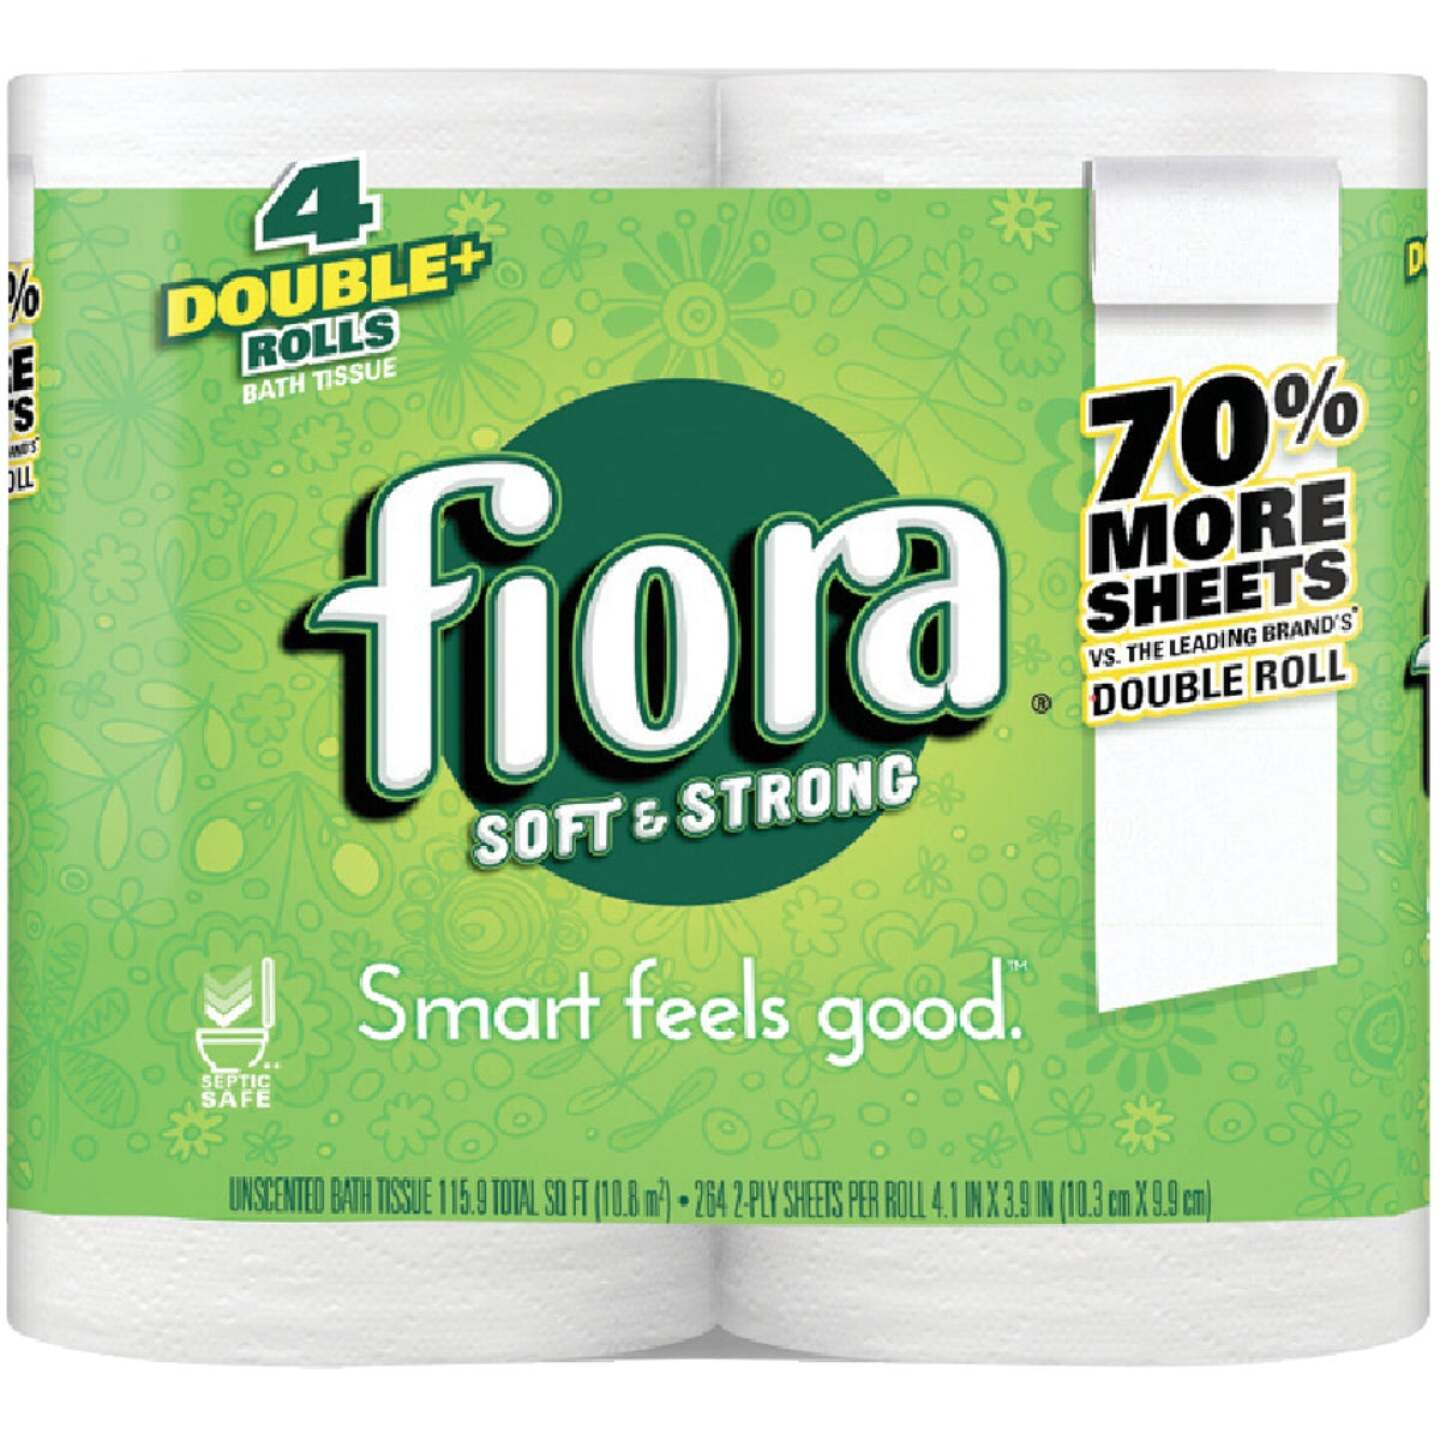 Fiora Soft & Strong Toilet Paper (4 Double Rolls) Image 1